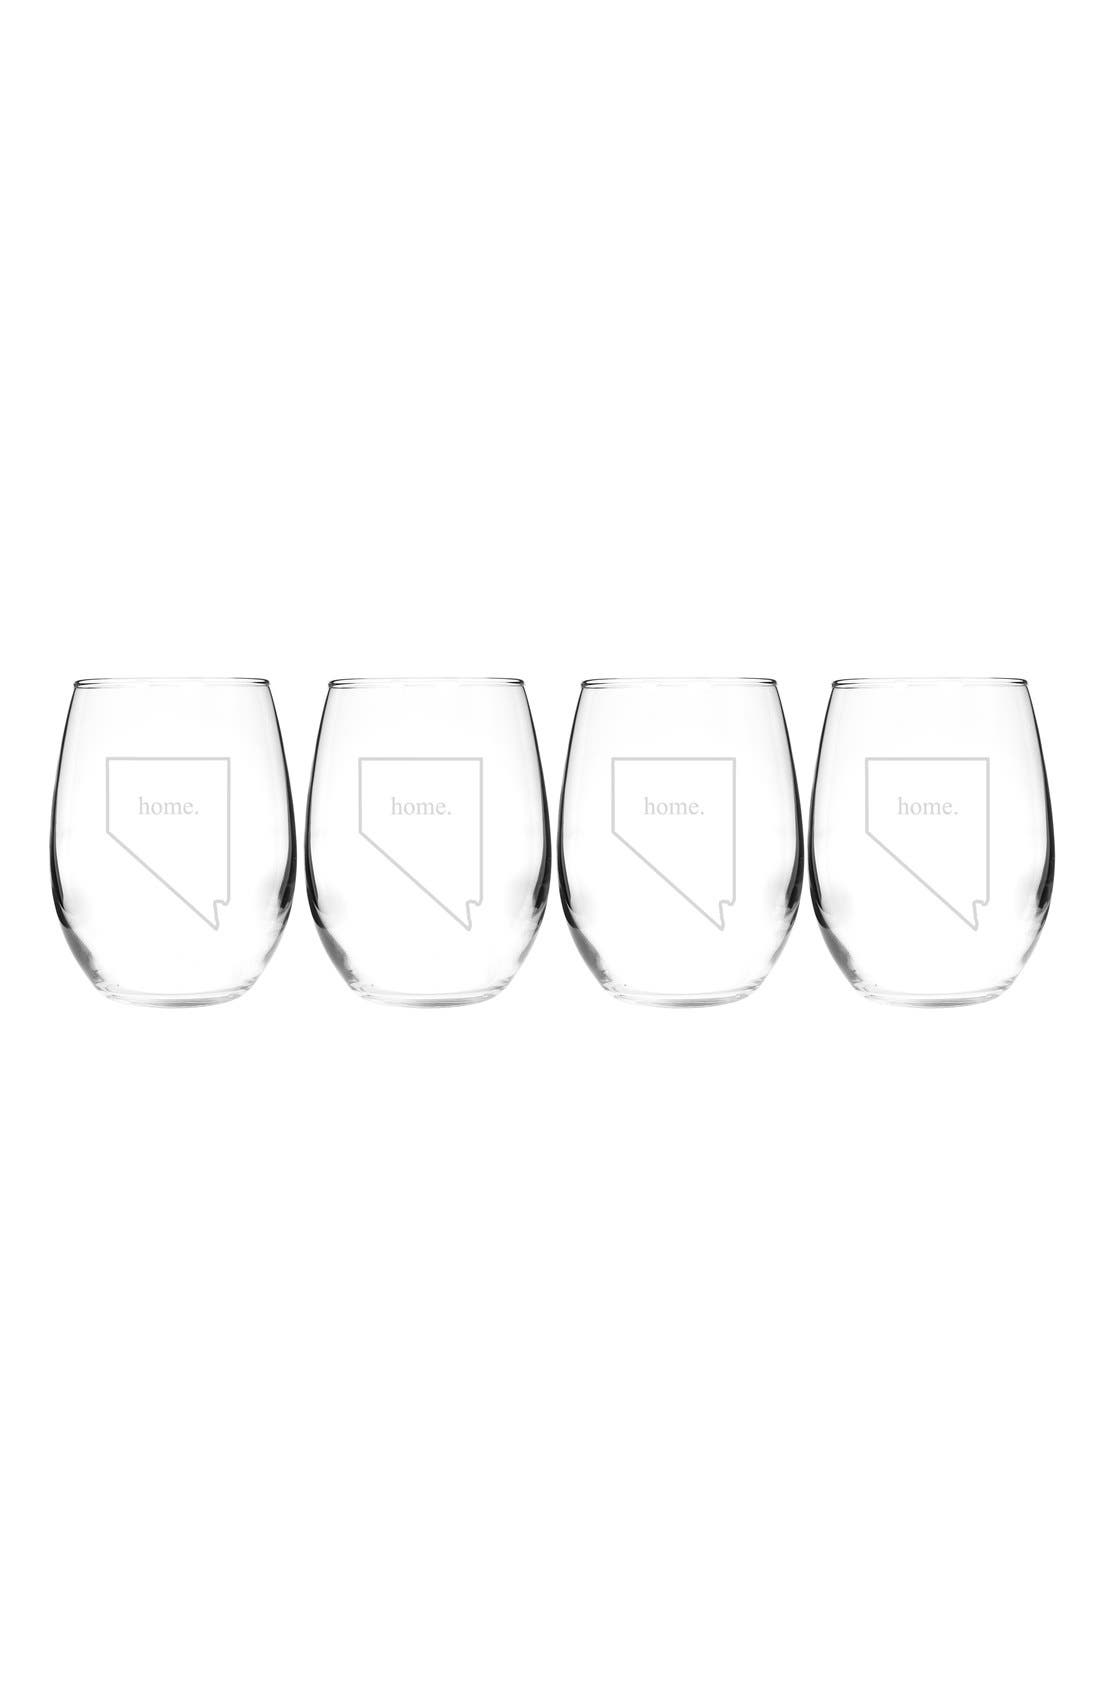 Home State Set of 4 Stemless Wine Glasses,                             Main thumbnail 34, color,